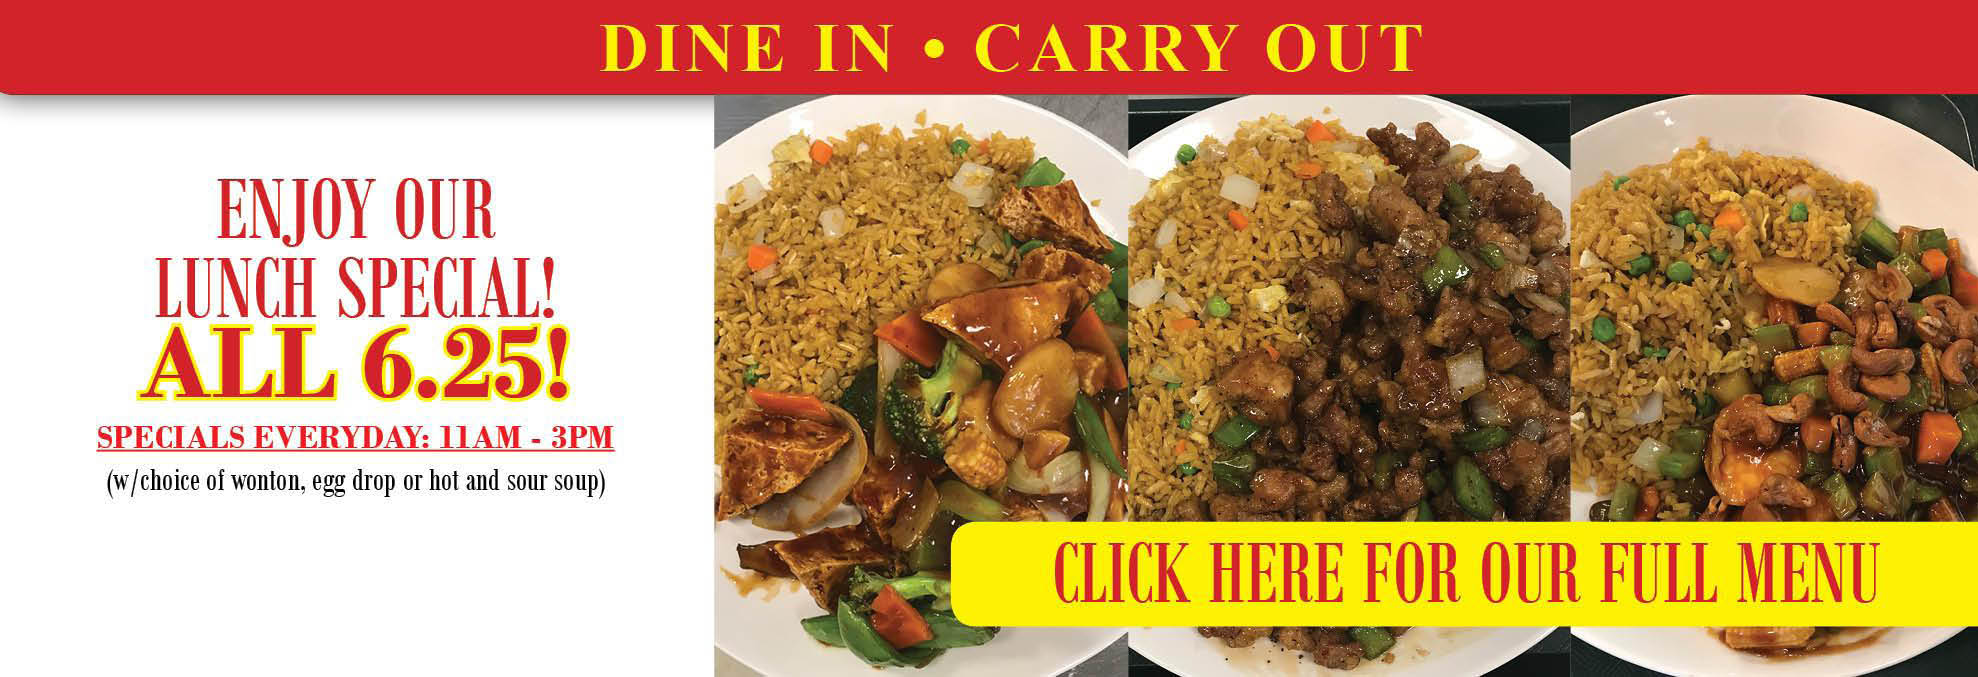 Chinese Cuisine, Chinese Food, Rice, Chicken, Vegetables, asian, take out